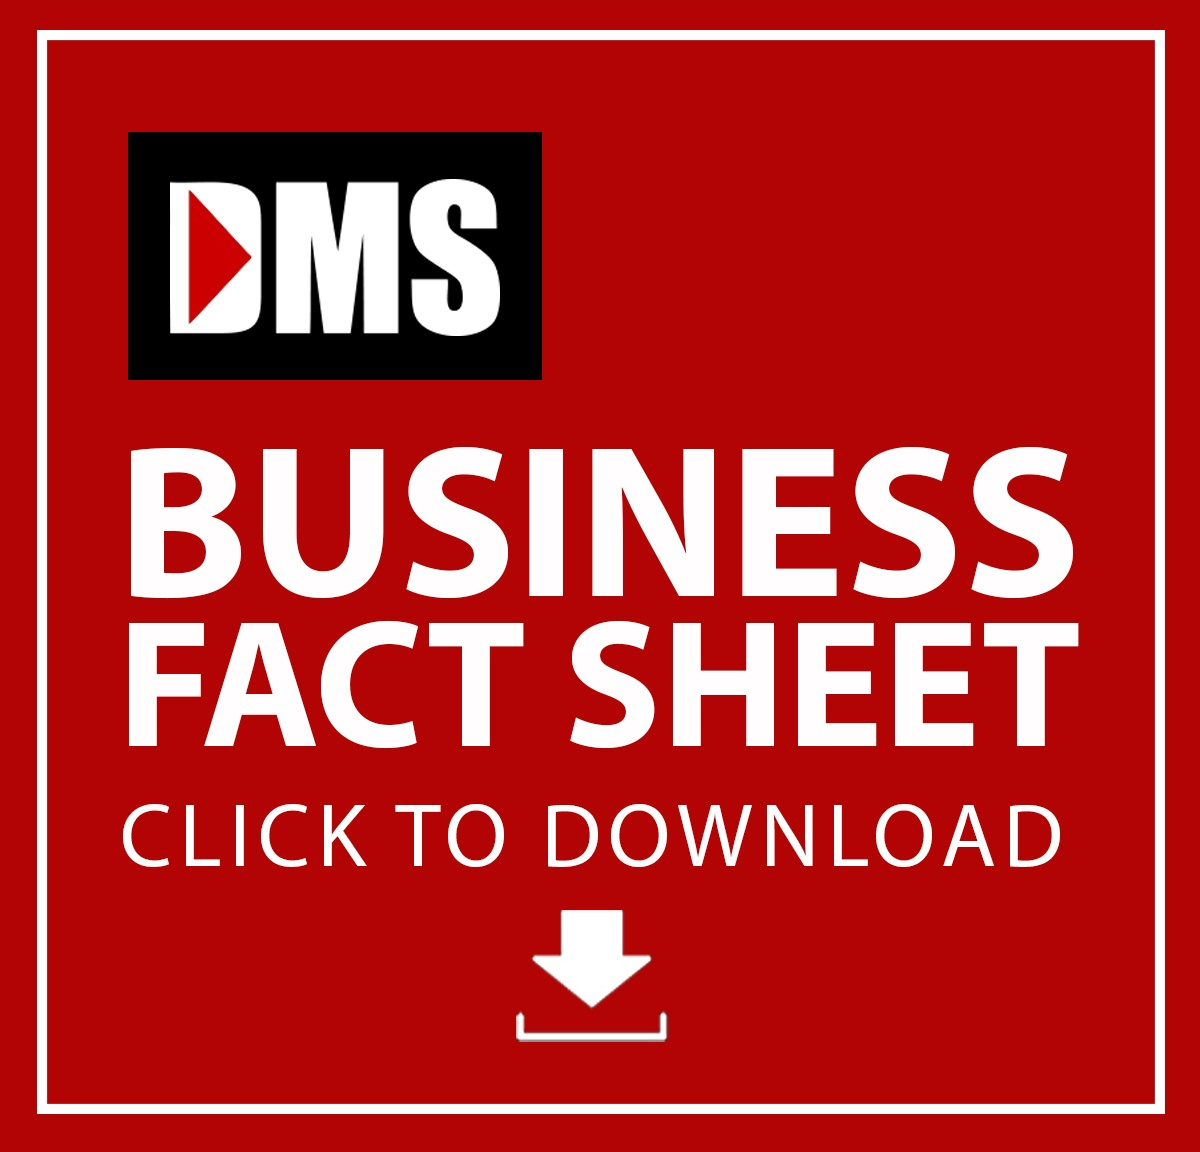 DMS-Business-Fact-Sheet-Web-Graphic